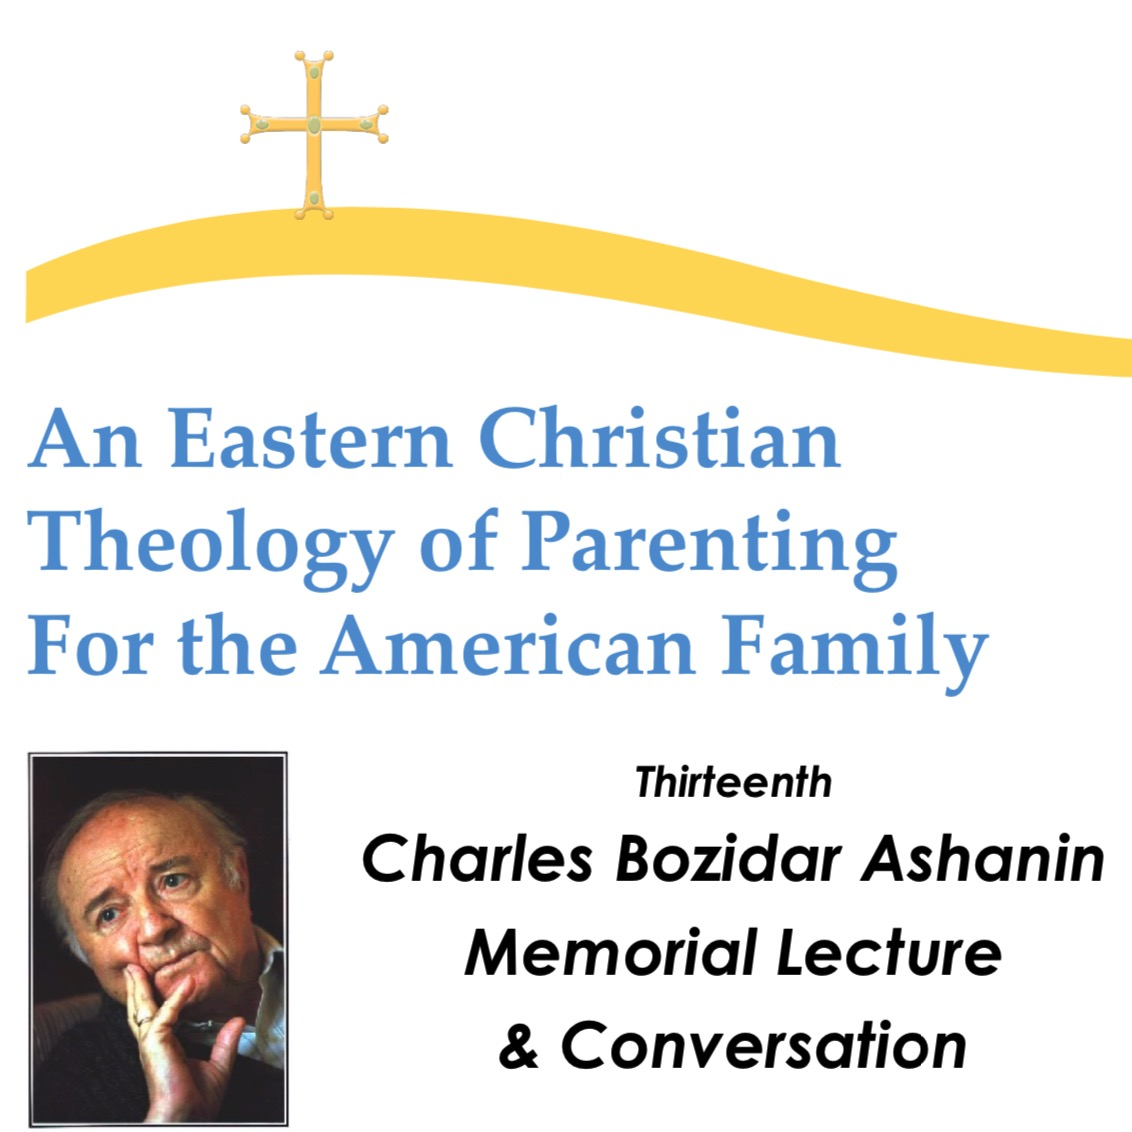 An Eastern Christian Theology of Parenting For the American Family